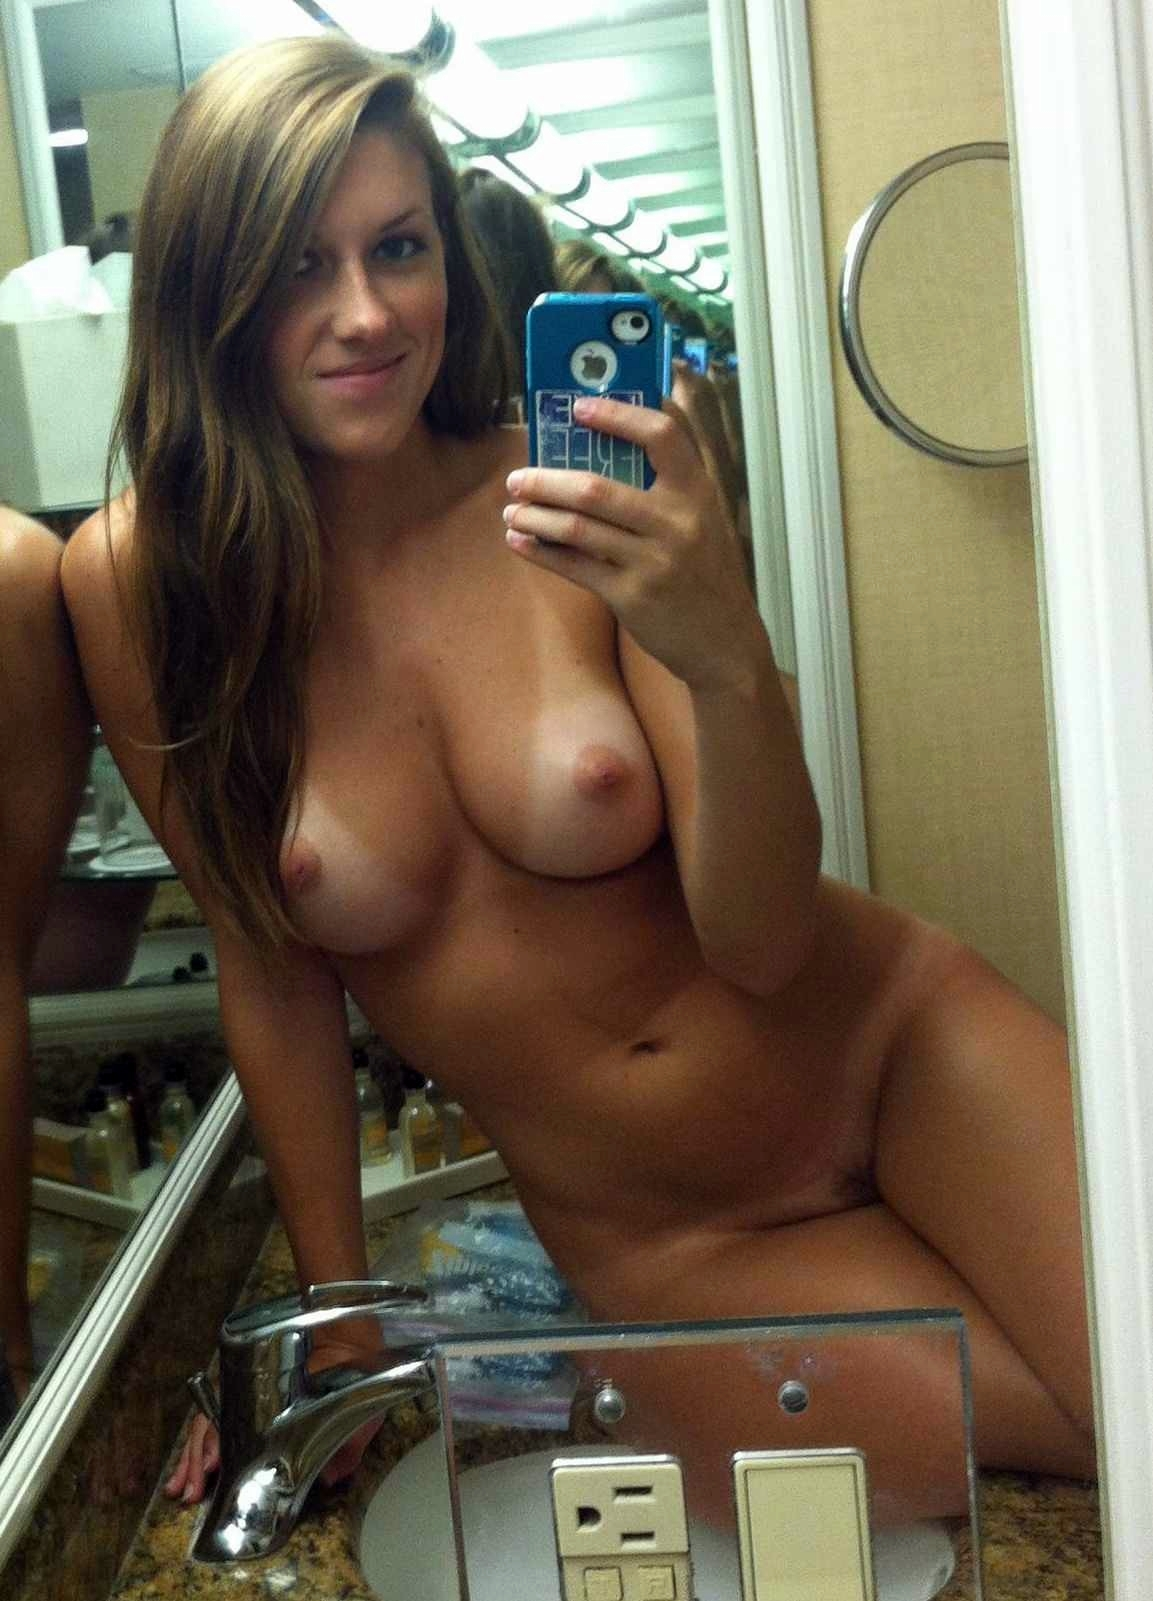 Hot girl shows off body